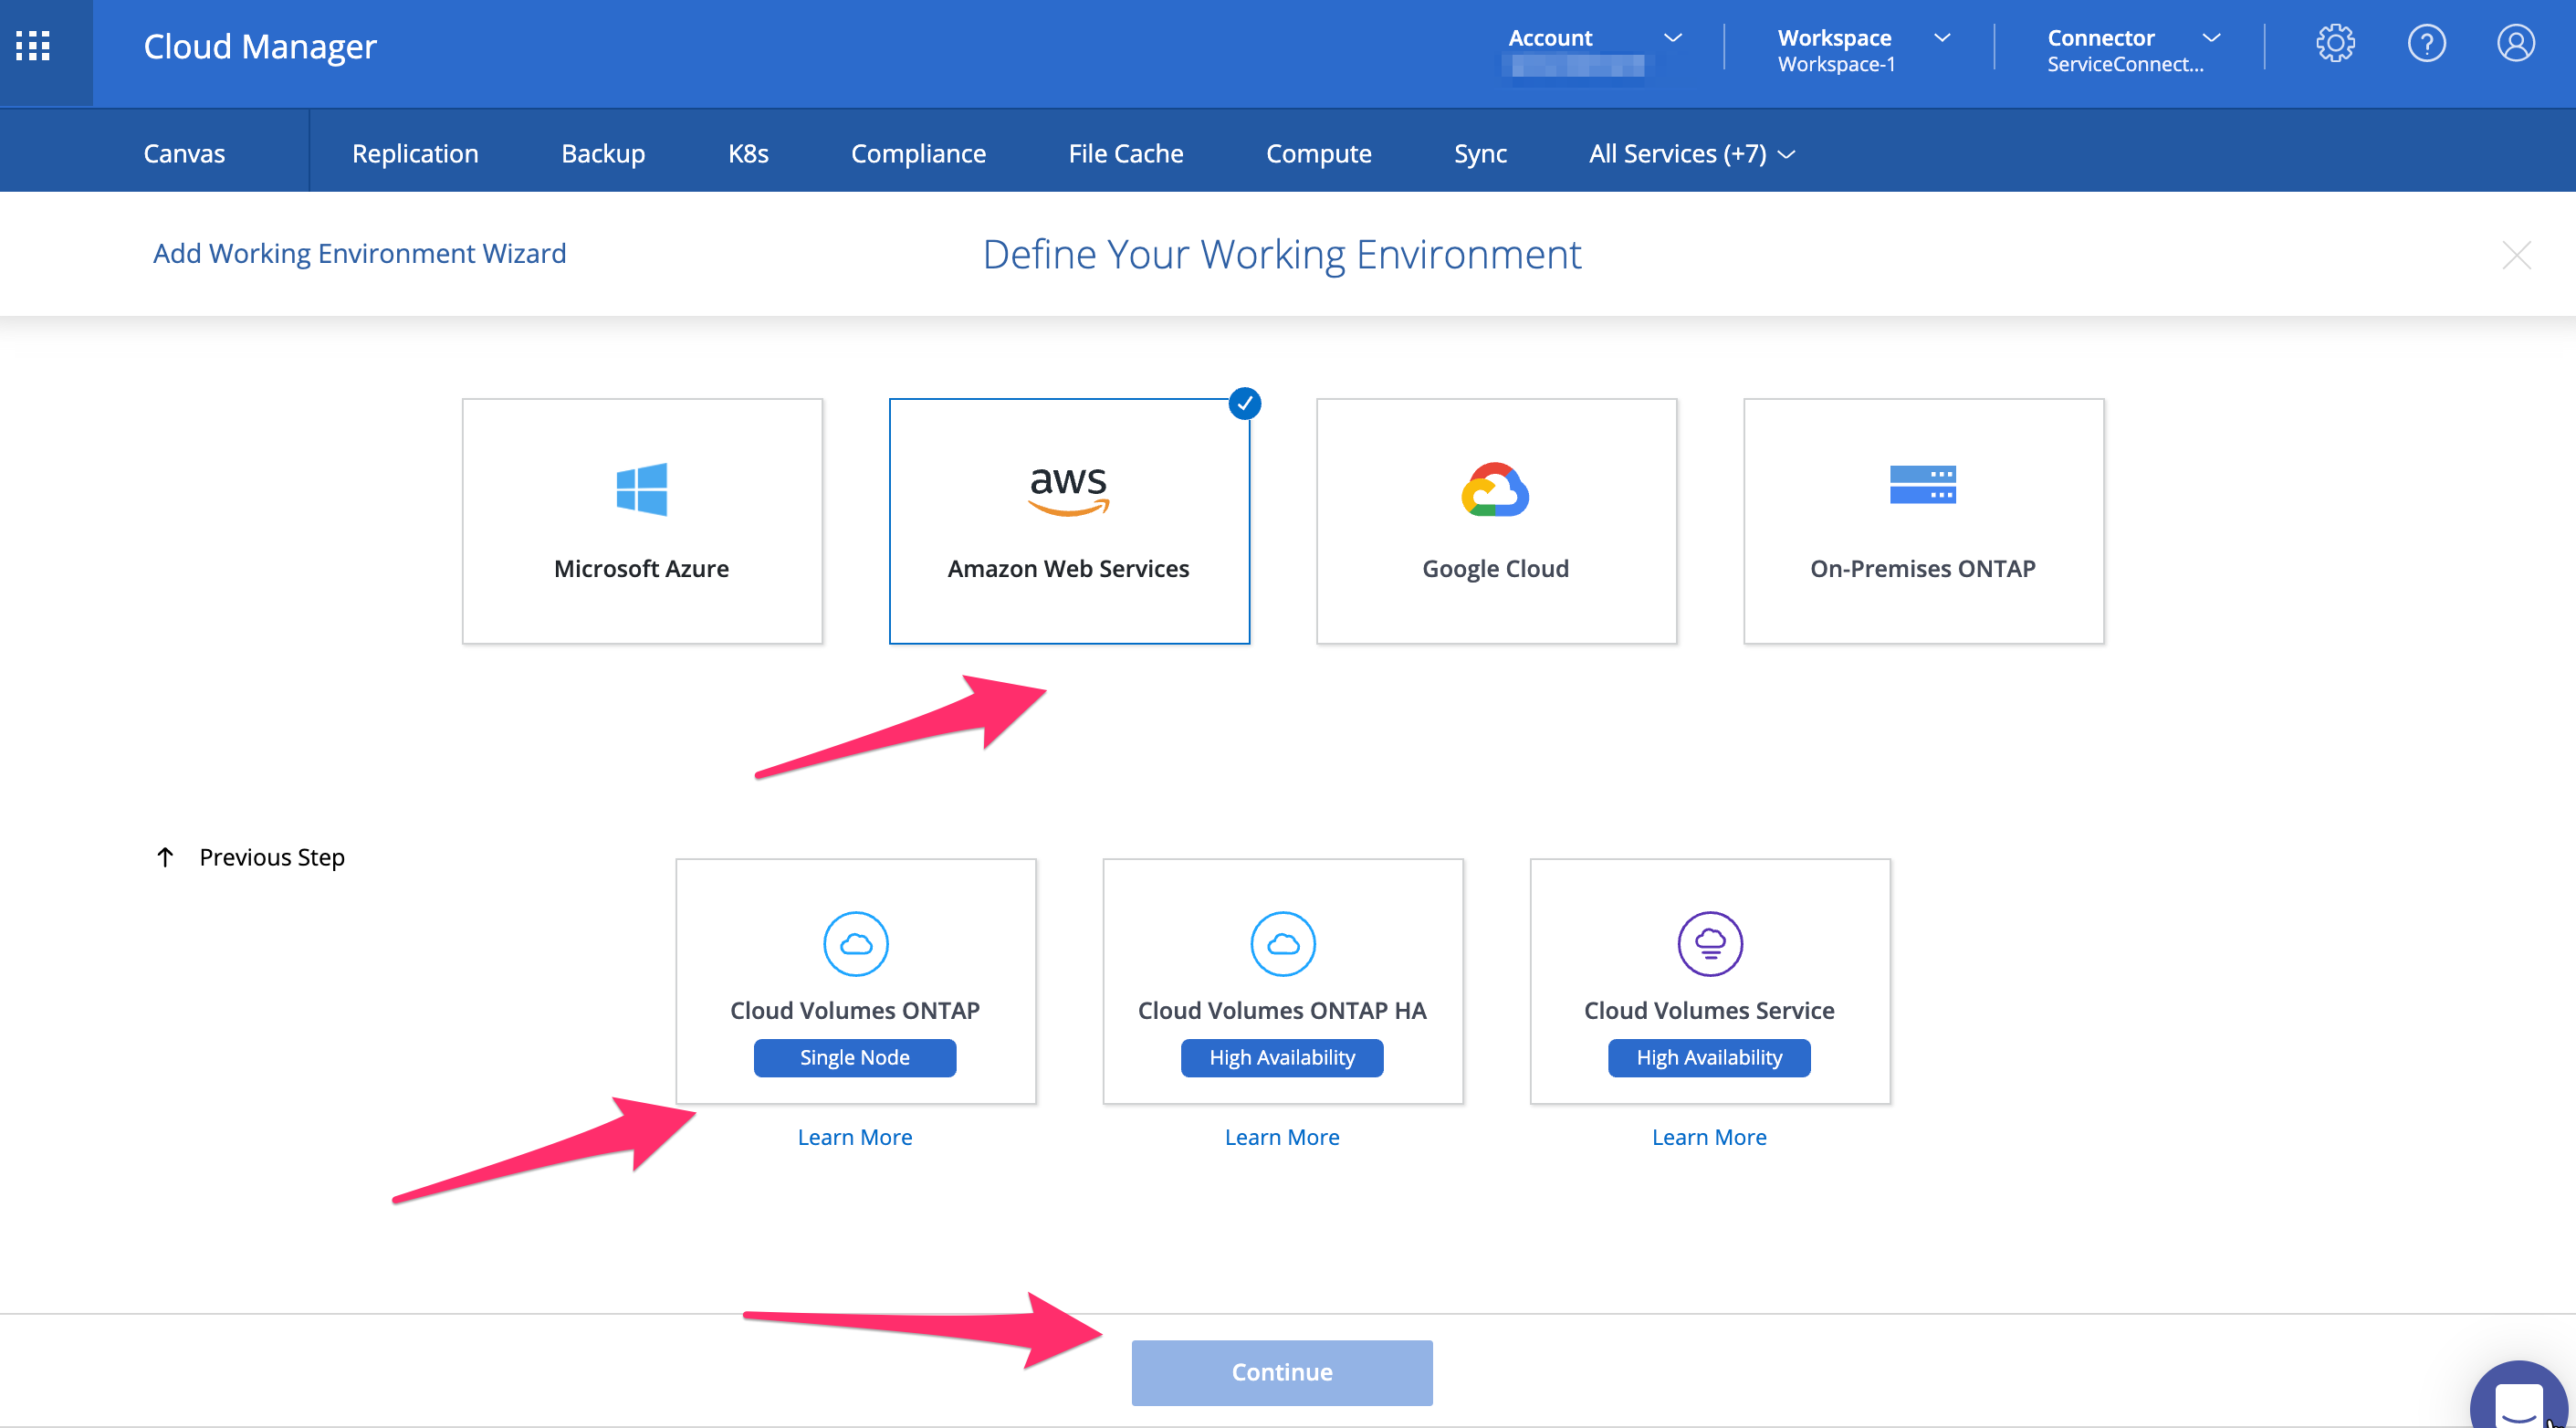 Creating a new environment and volume in NetApp Cloud Manager